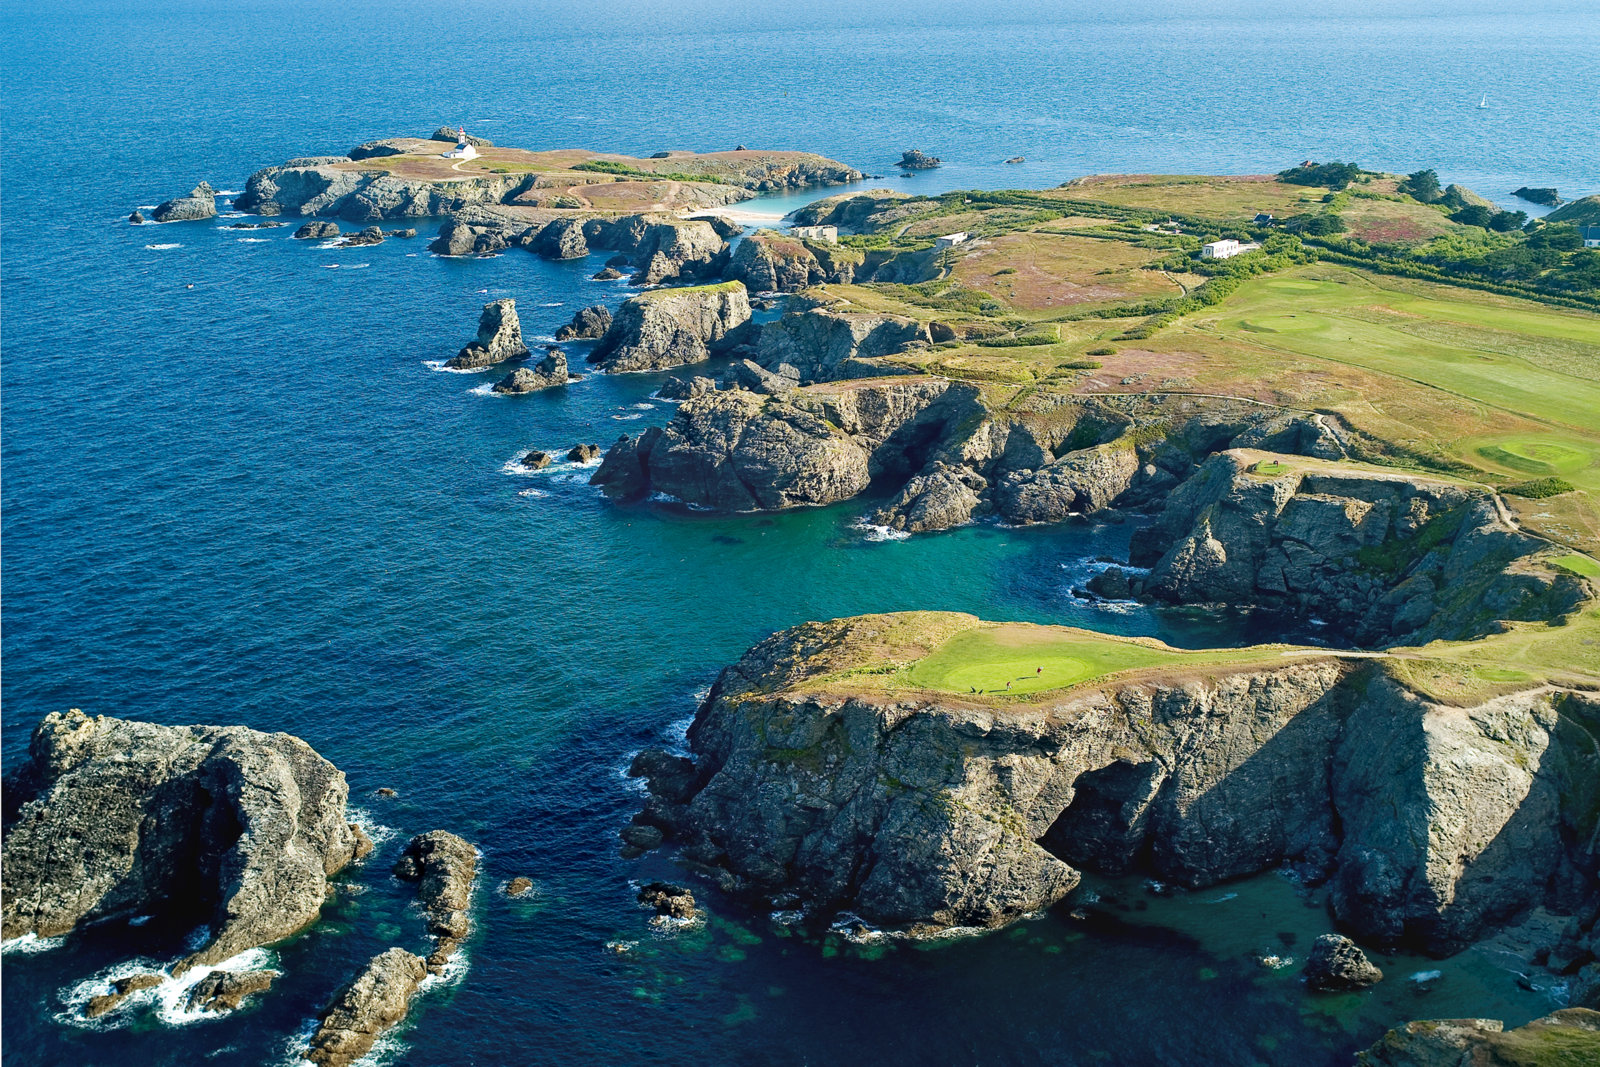 Belle Ile golf course, France